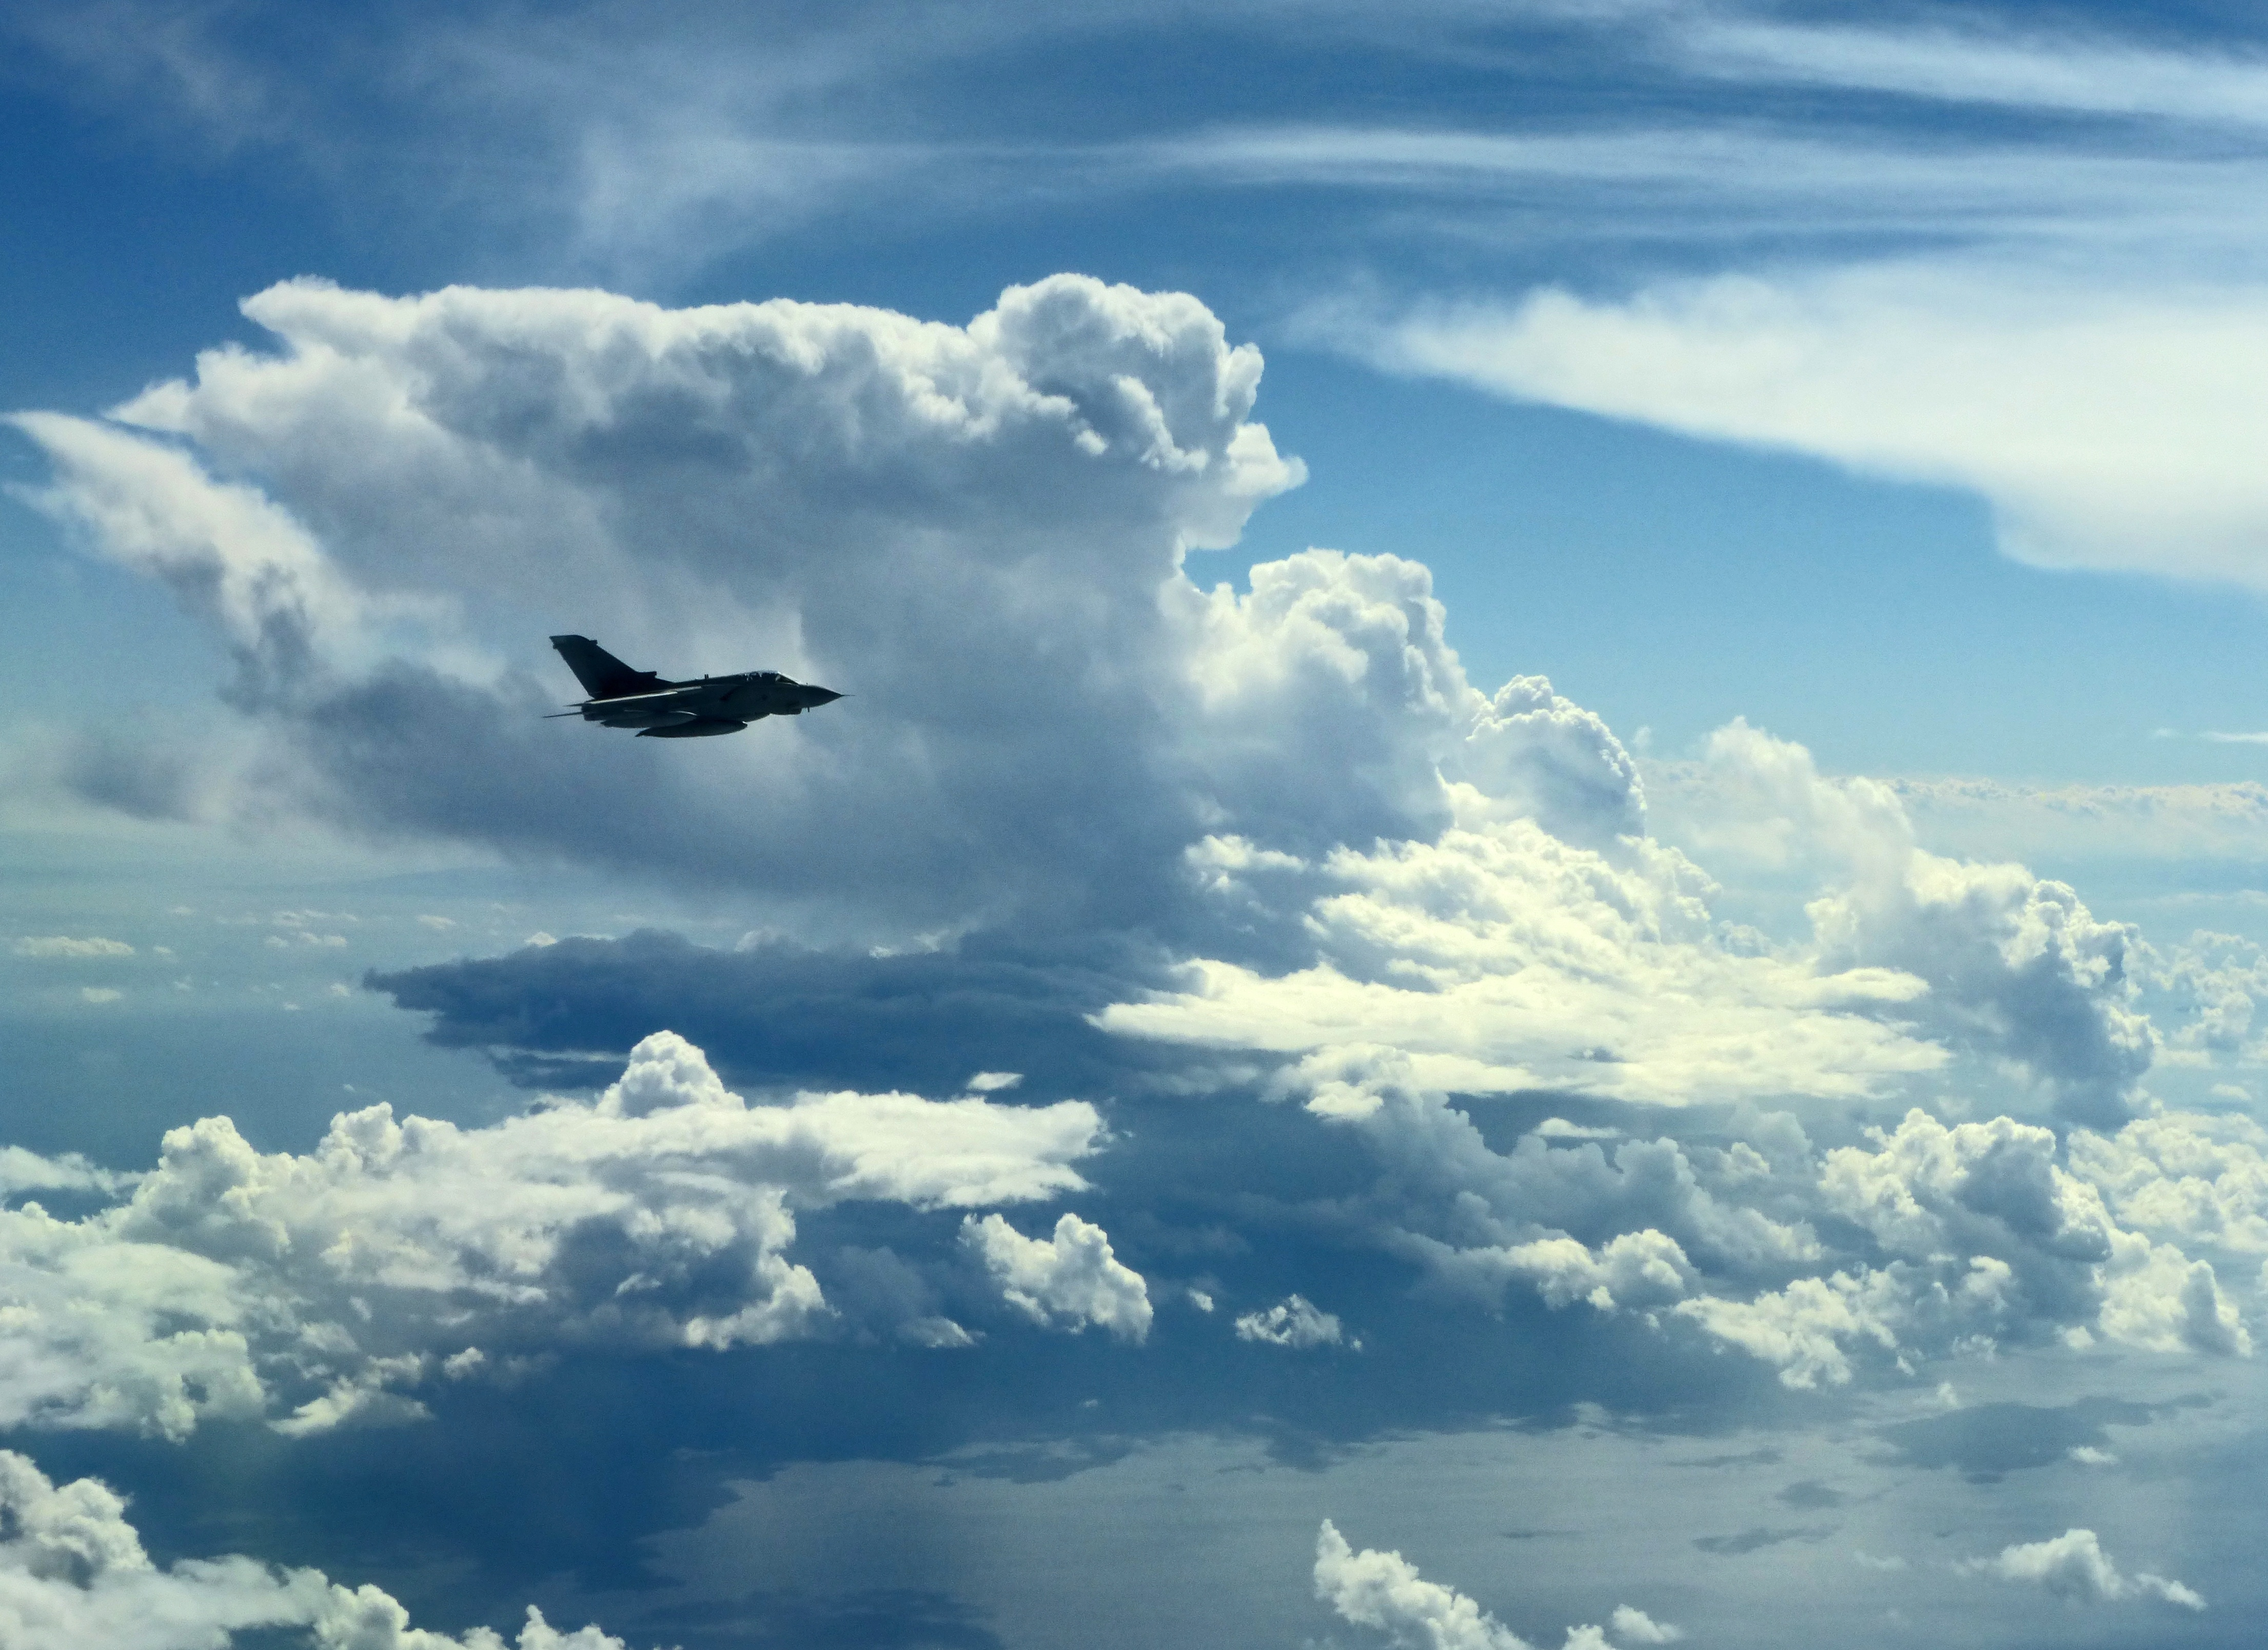 aircraft images in clouds wallpaper - photo #19